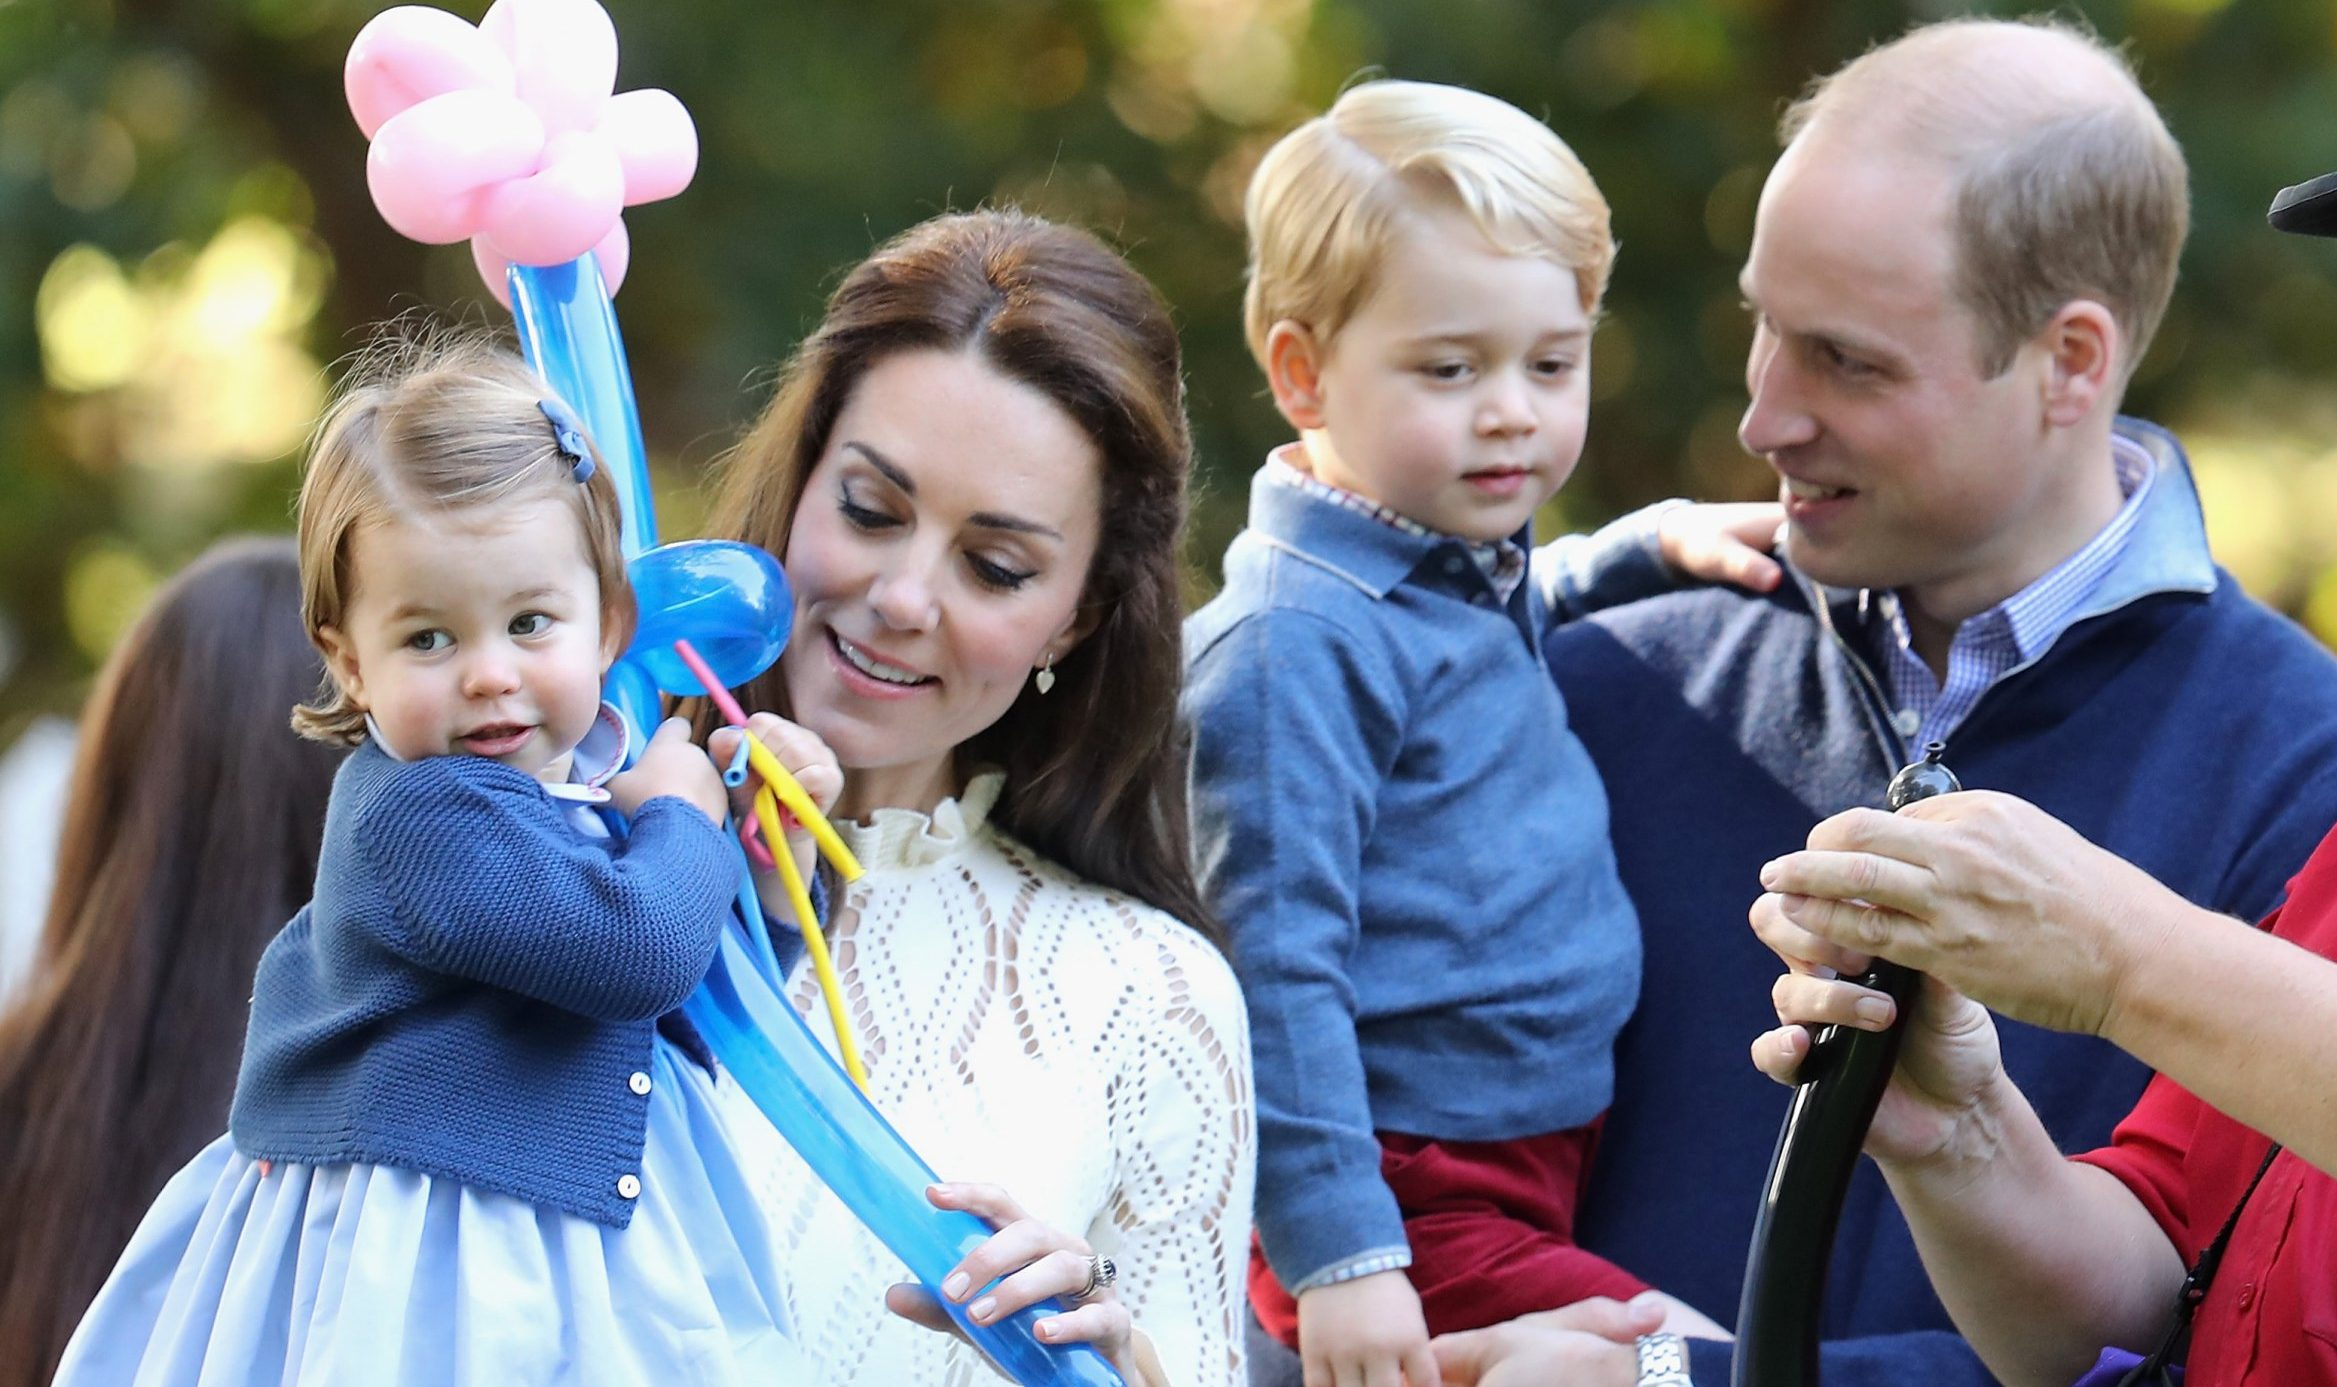 William and Kate announce they are expecting their third child